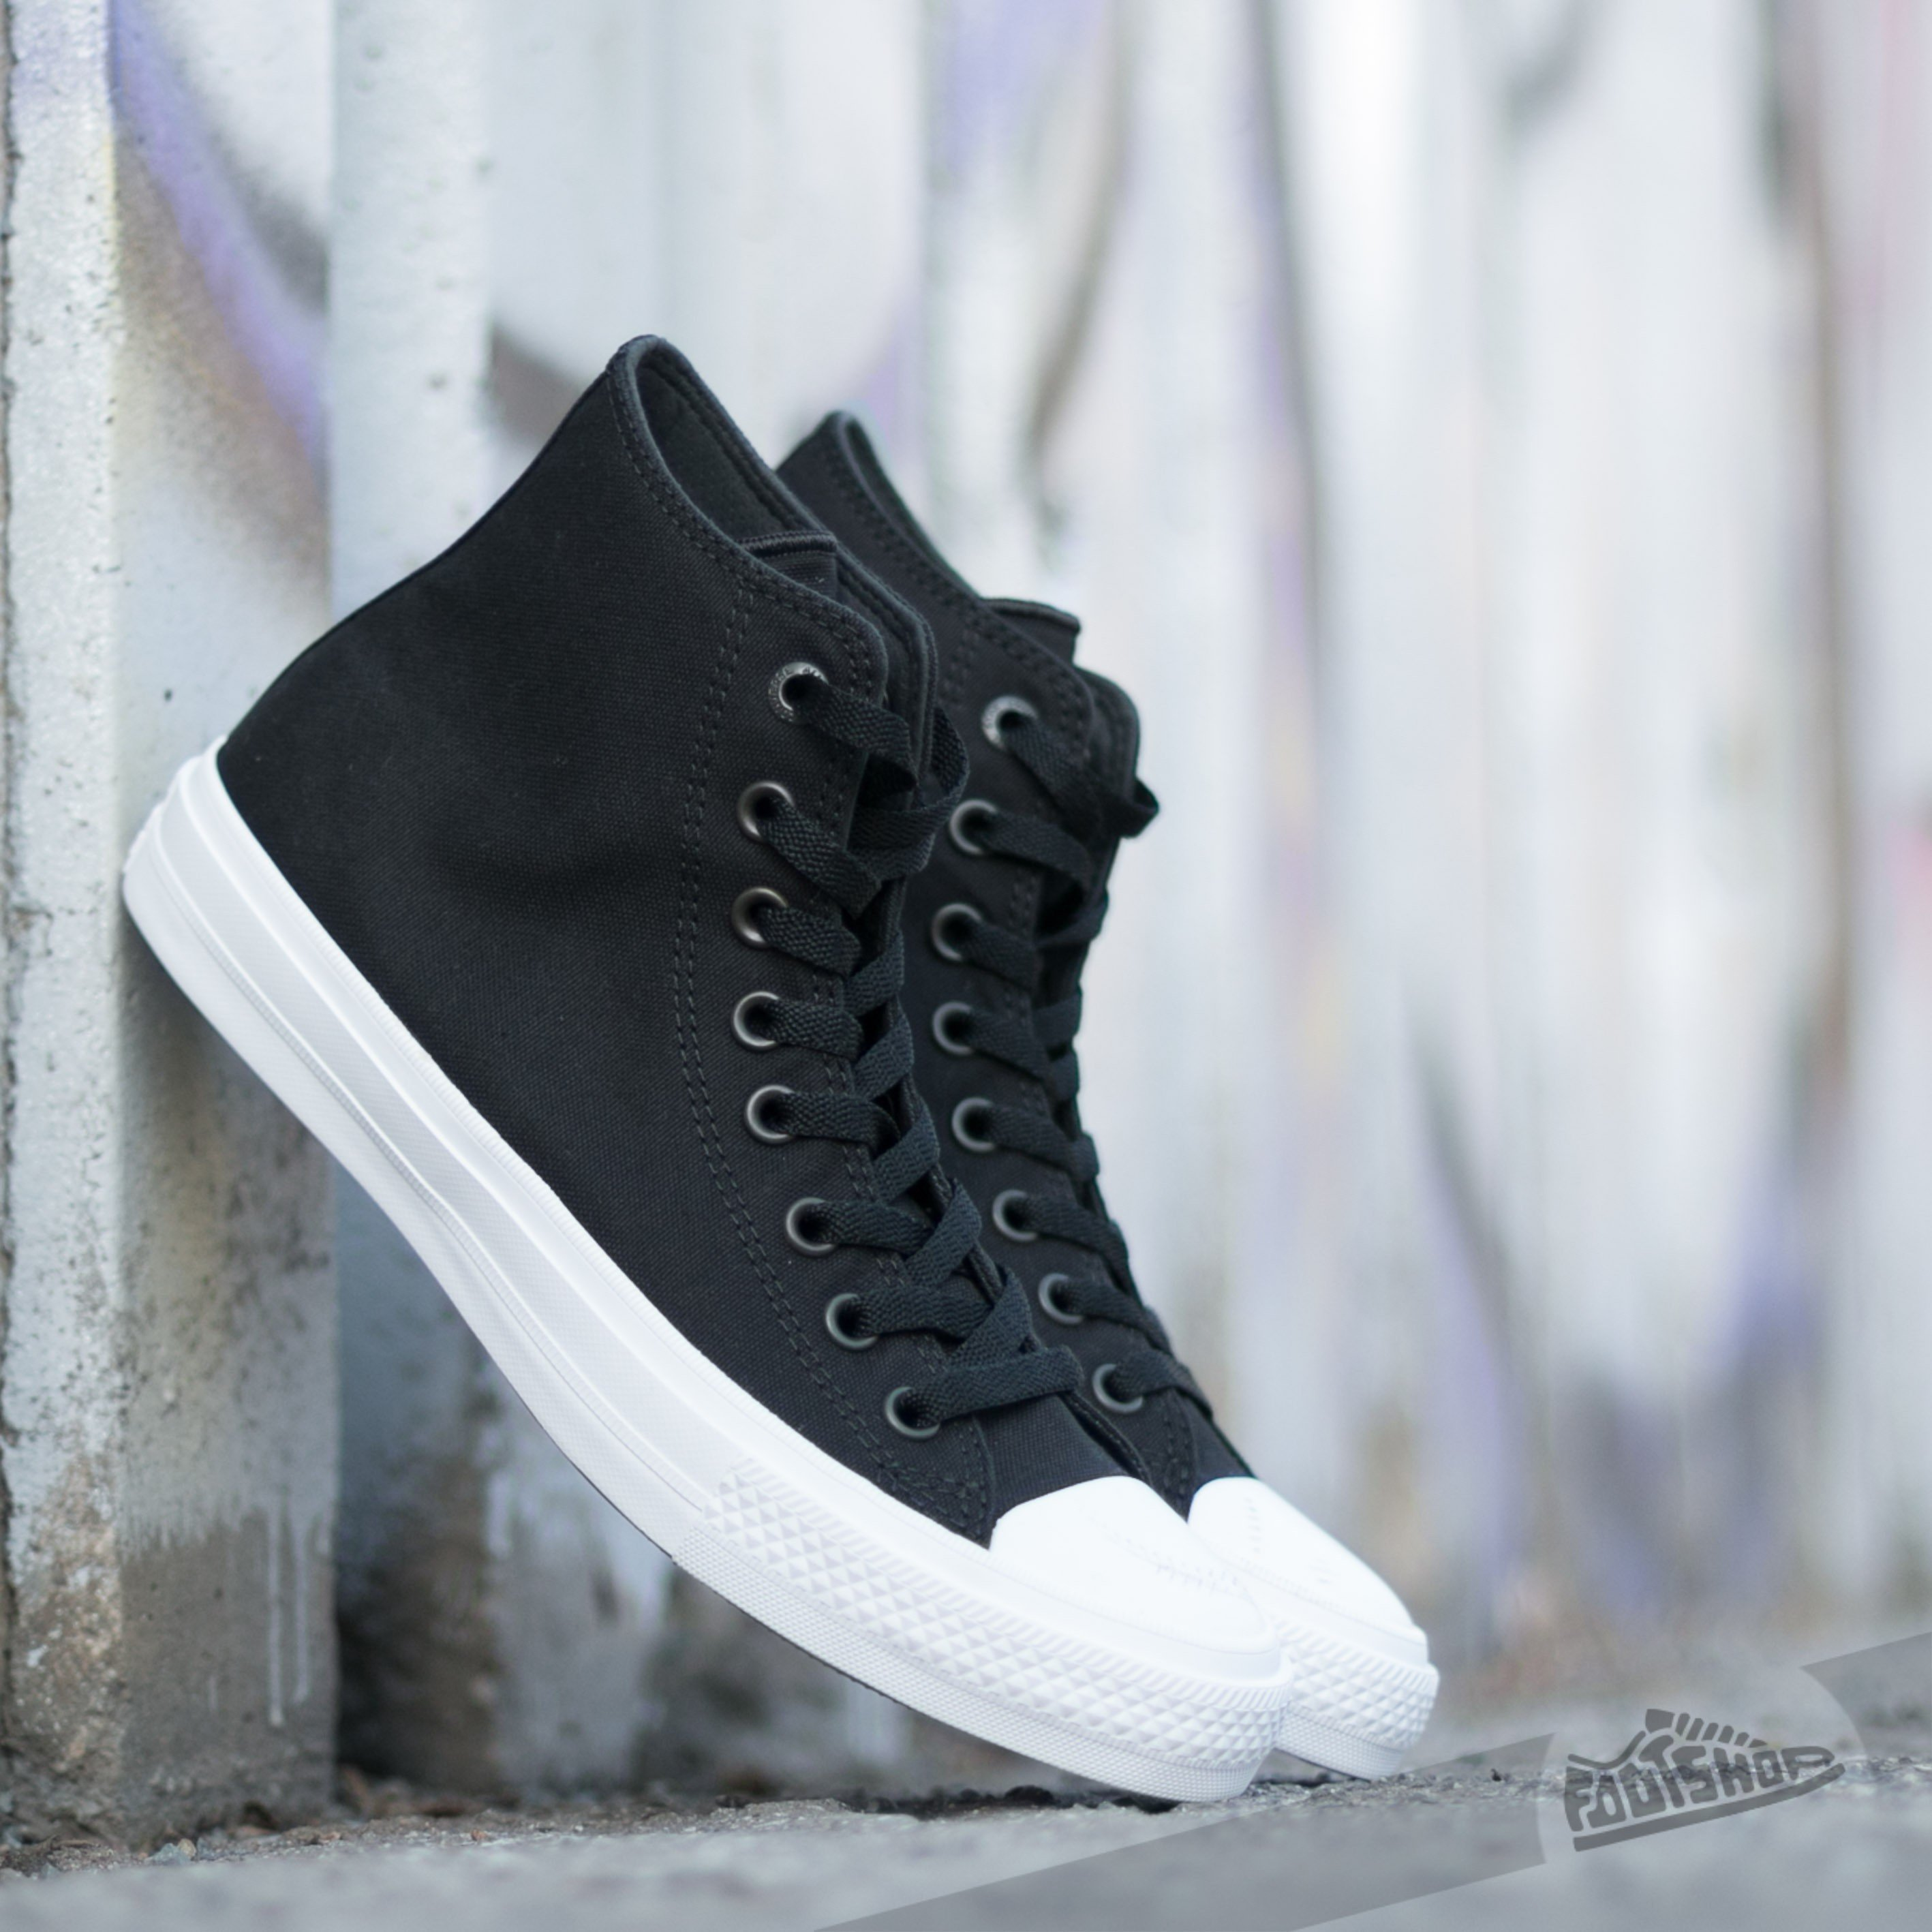 57602e6fc0f88 Converse CT II Hi Black/ White | Footshop